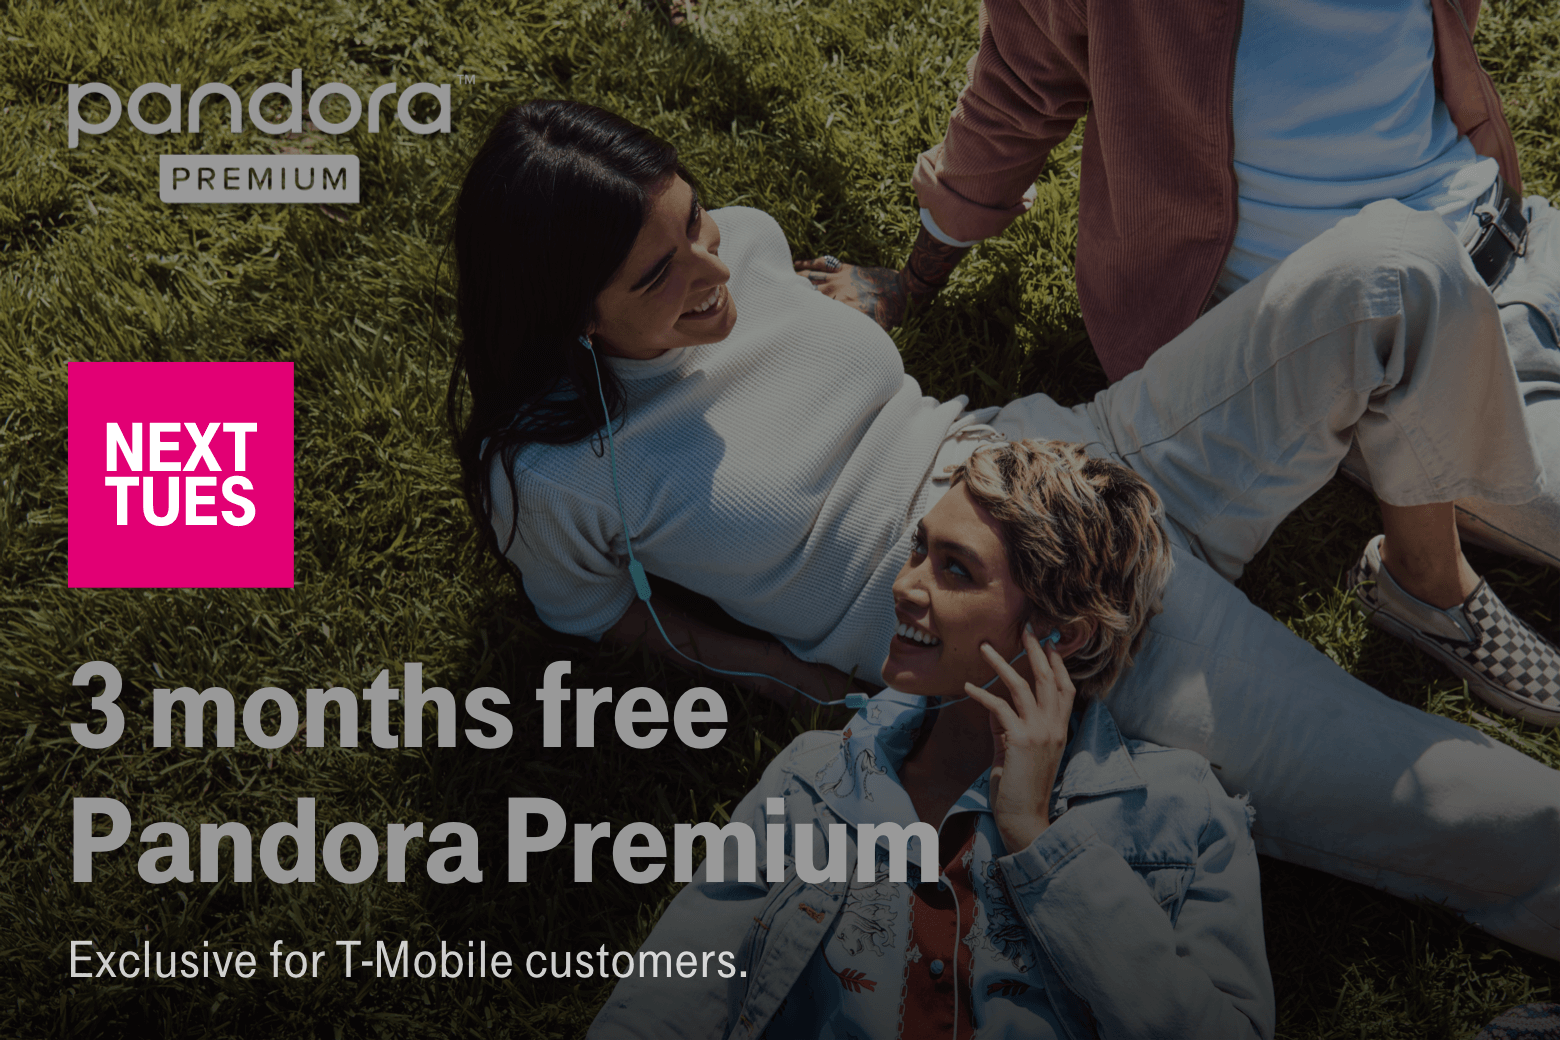 Pandora. Next Tues. 3 months free  Pandora Premium. Exclusive for T-Mobile customers.